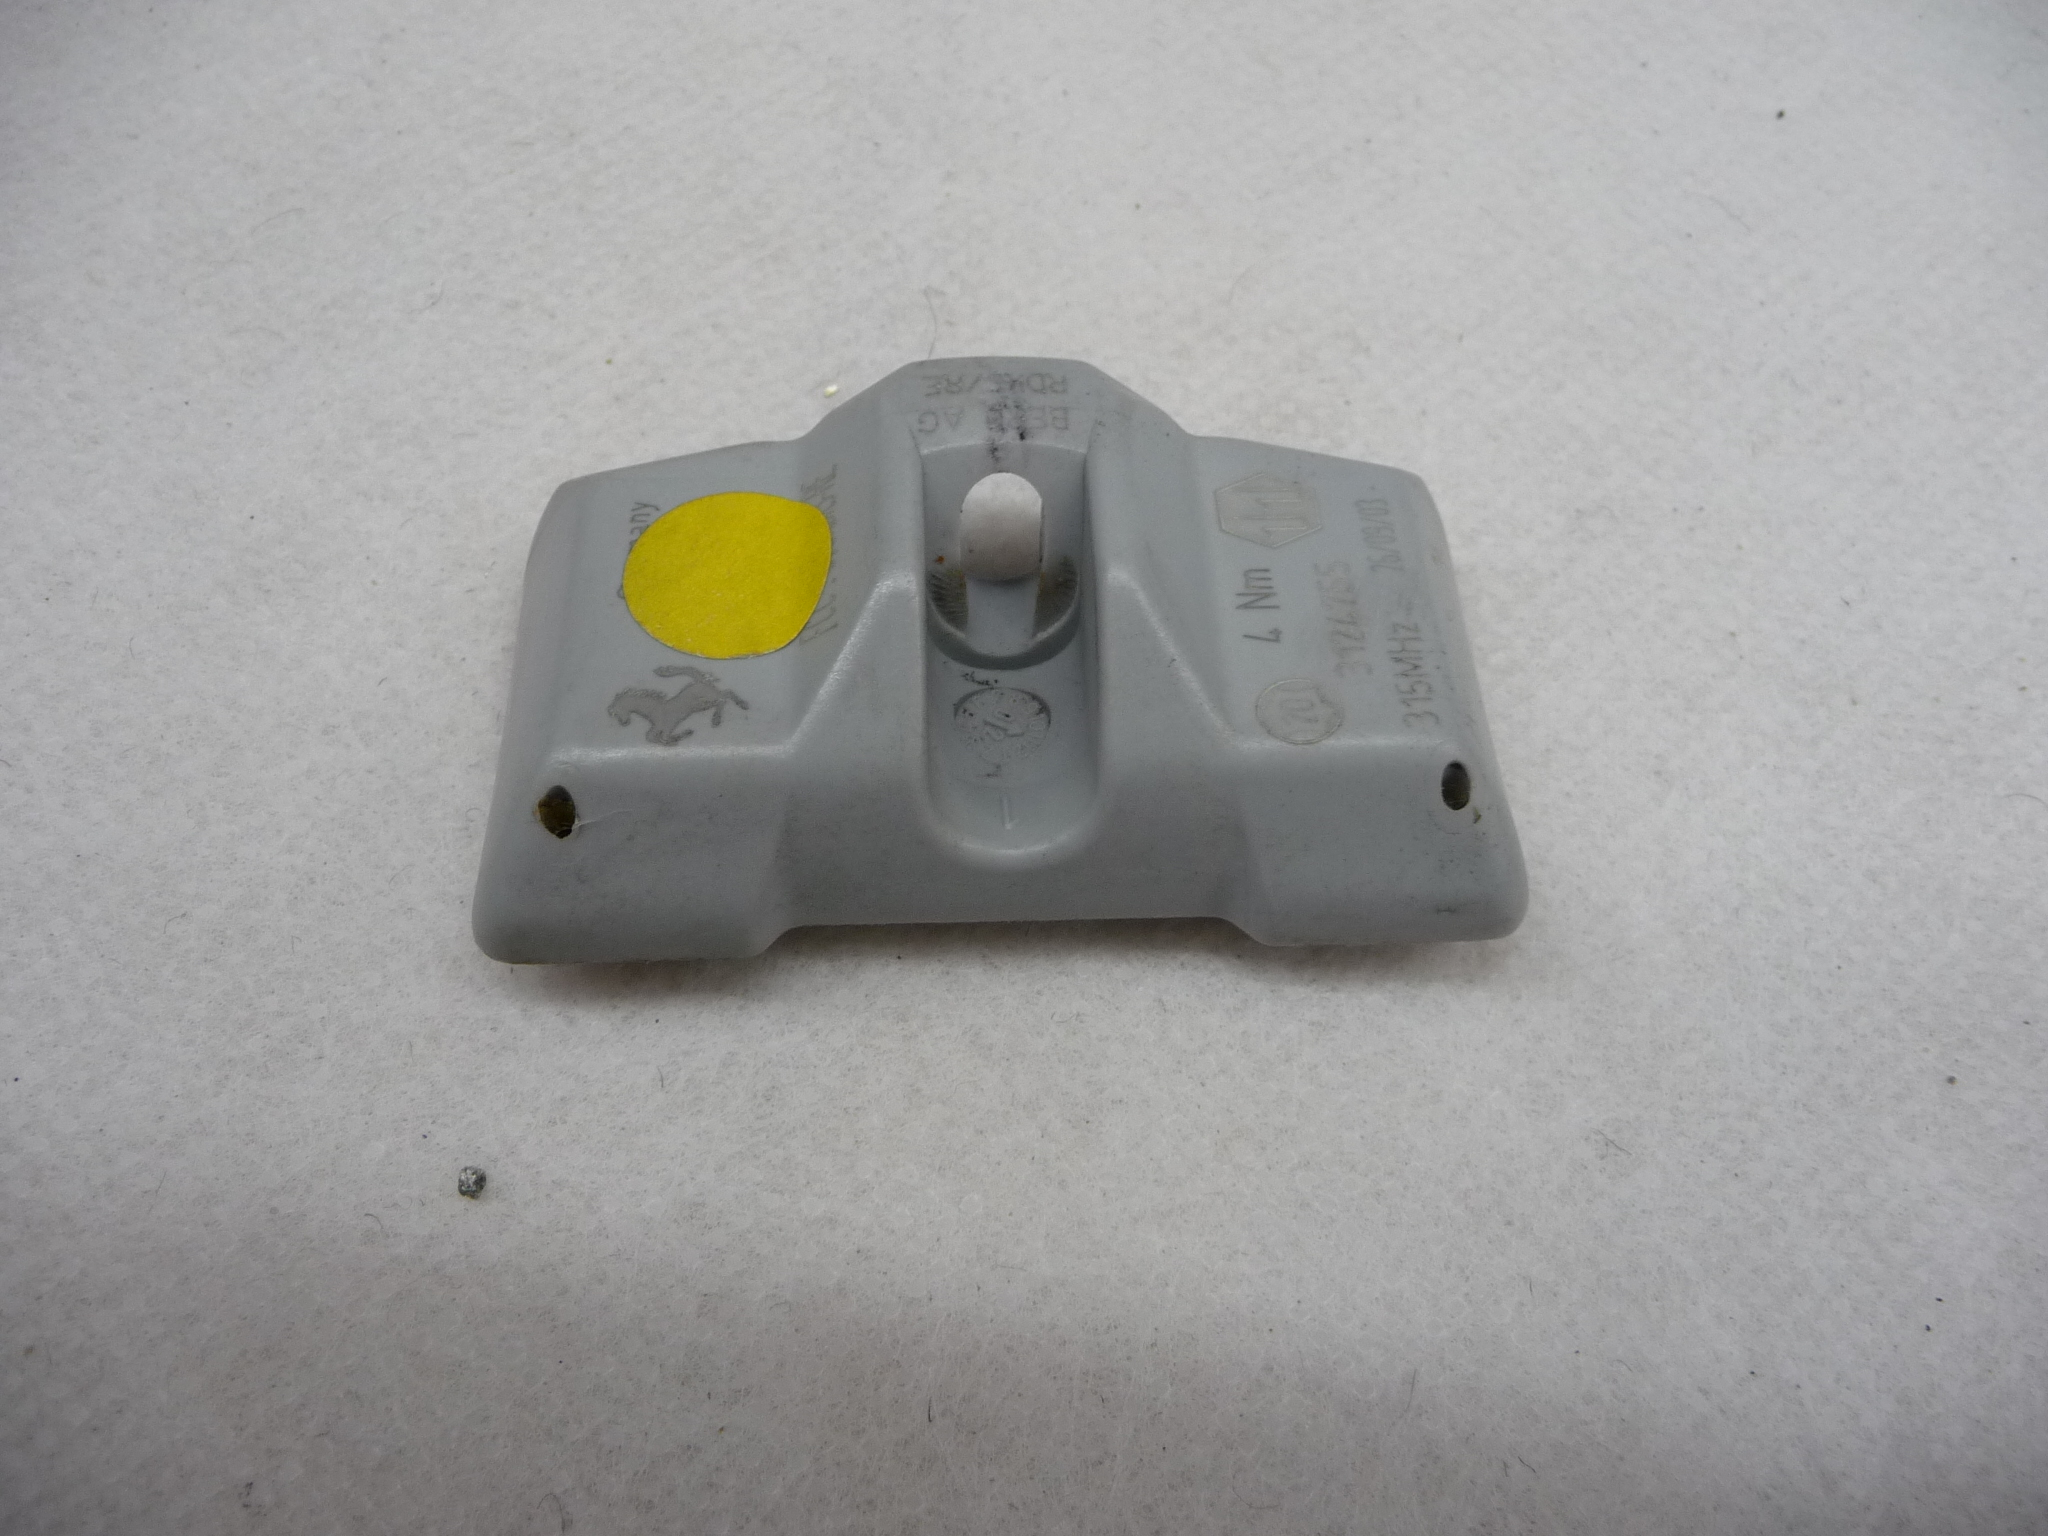 2006 2007 2008 2009 Ferrari F430 430 Tire Pressure Control Sensor Scuderia 599 224548 - Used Auto Parts Store | LA Global Parts